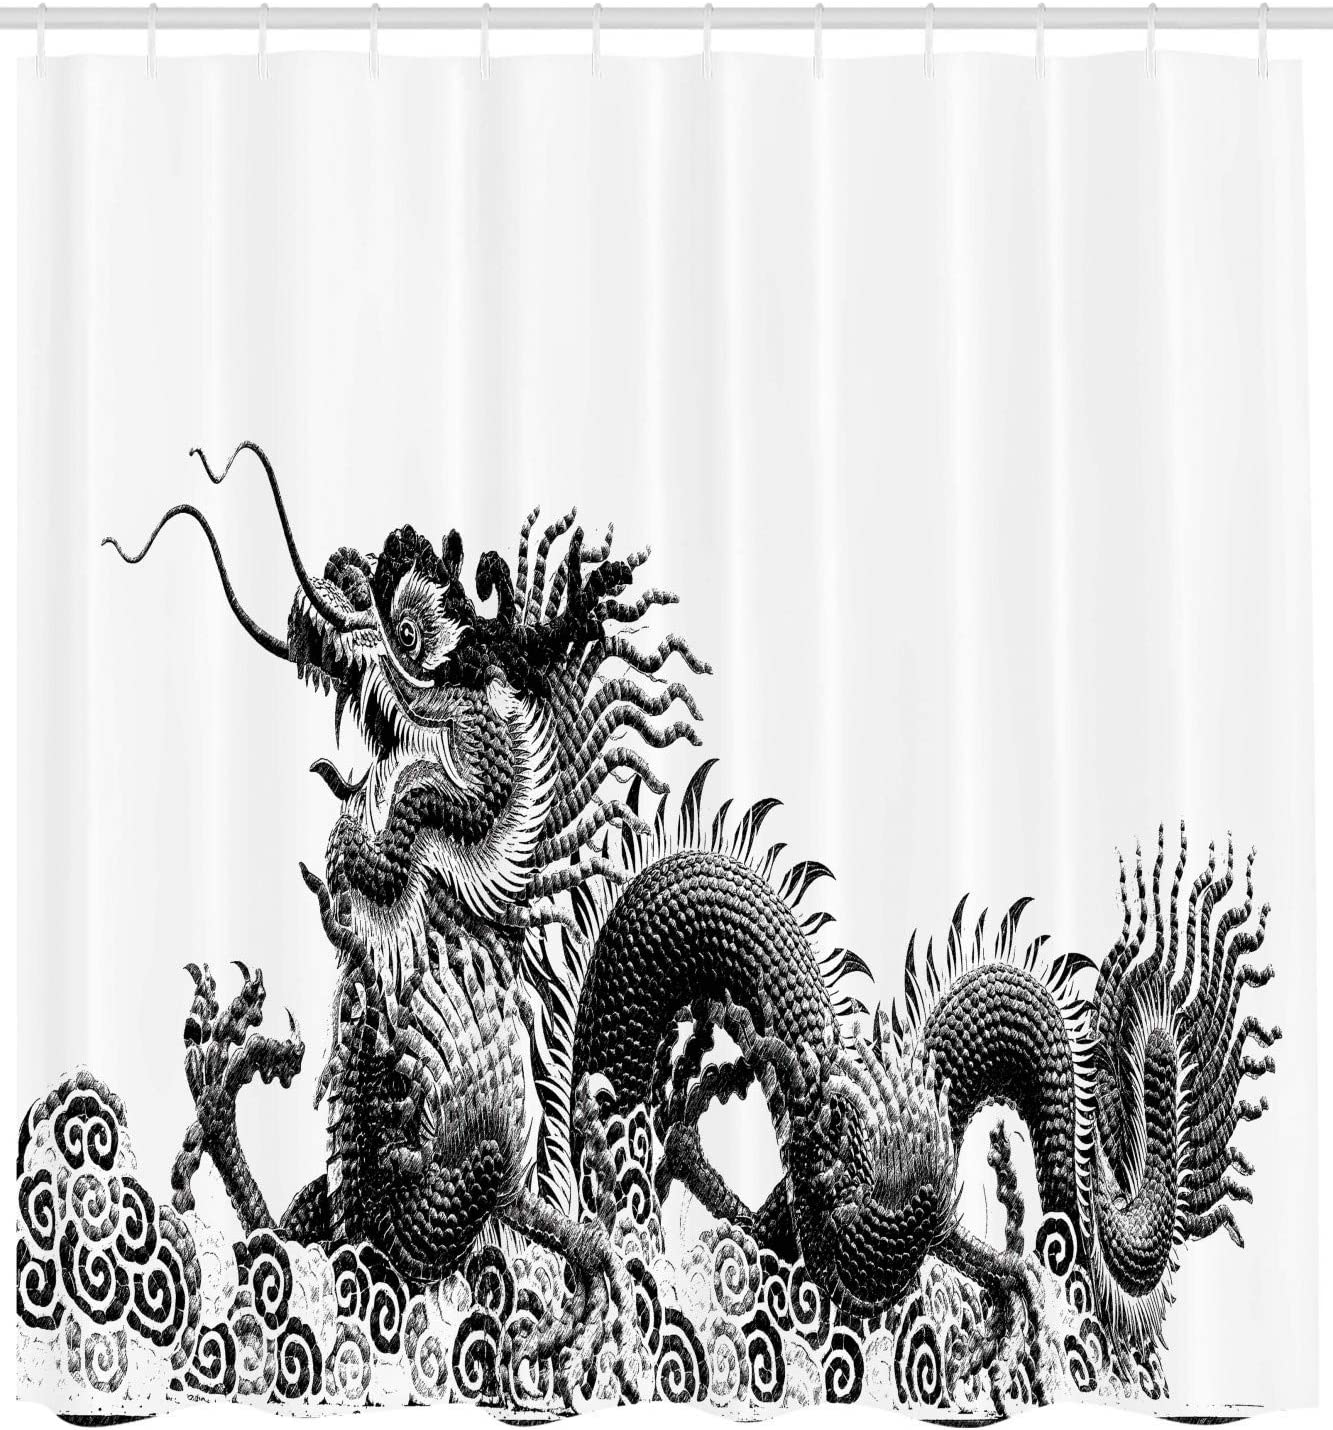 Black White Traditional Chinese Dragon Symbolize Strength and Good Luck Powers Fantasy Graphic Work Polyester Fabric Bathroom Shower Curtain Set with Hooks Ambesonne Dragon Decor Collection